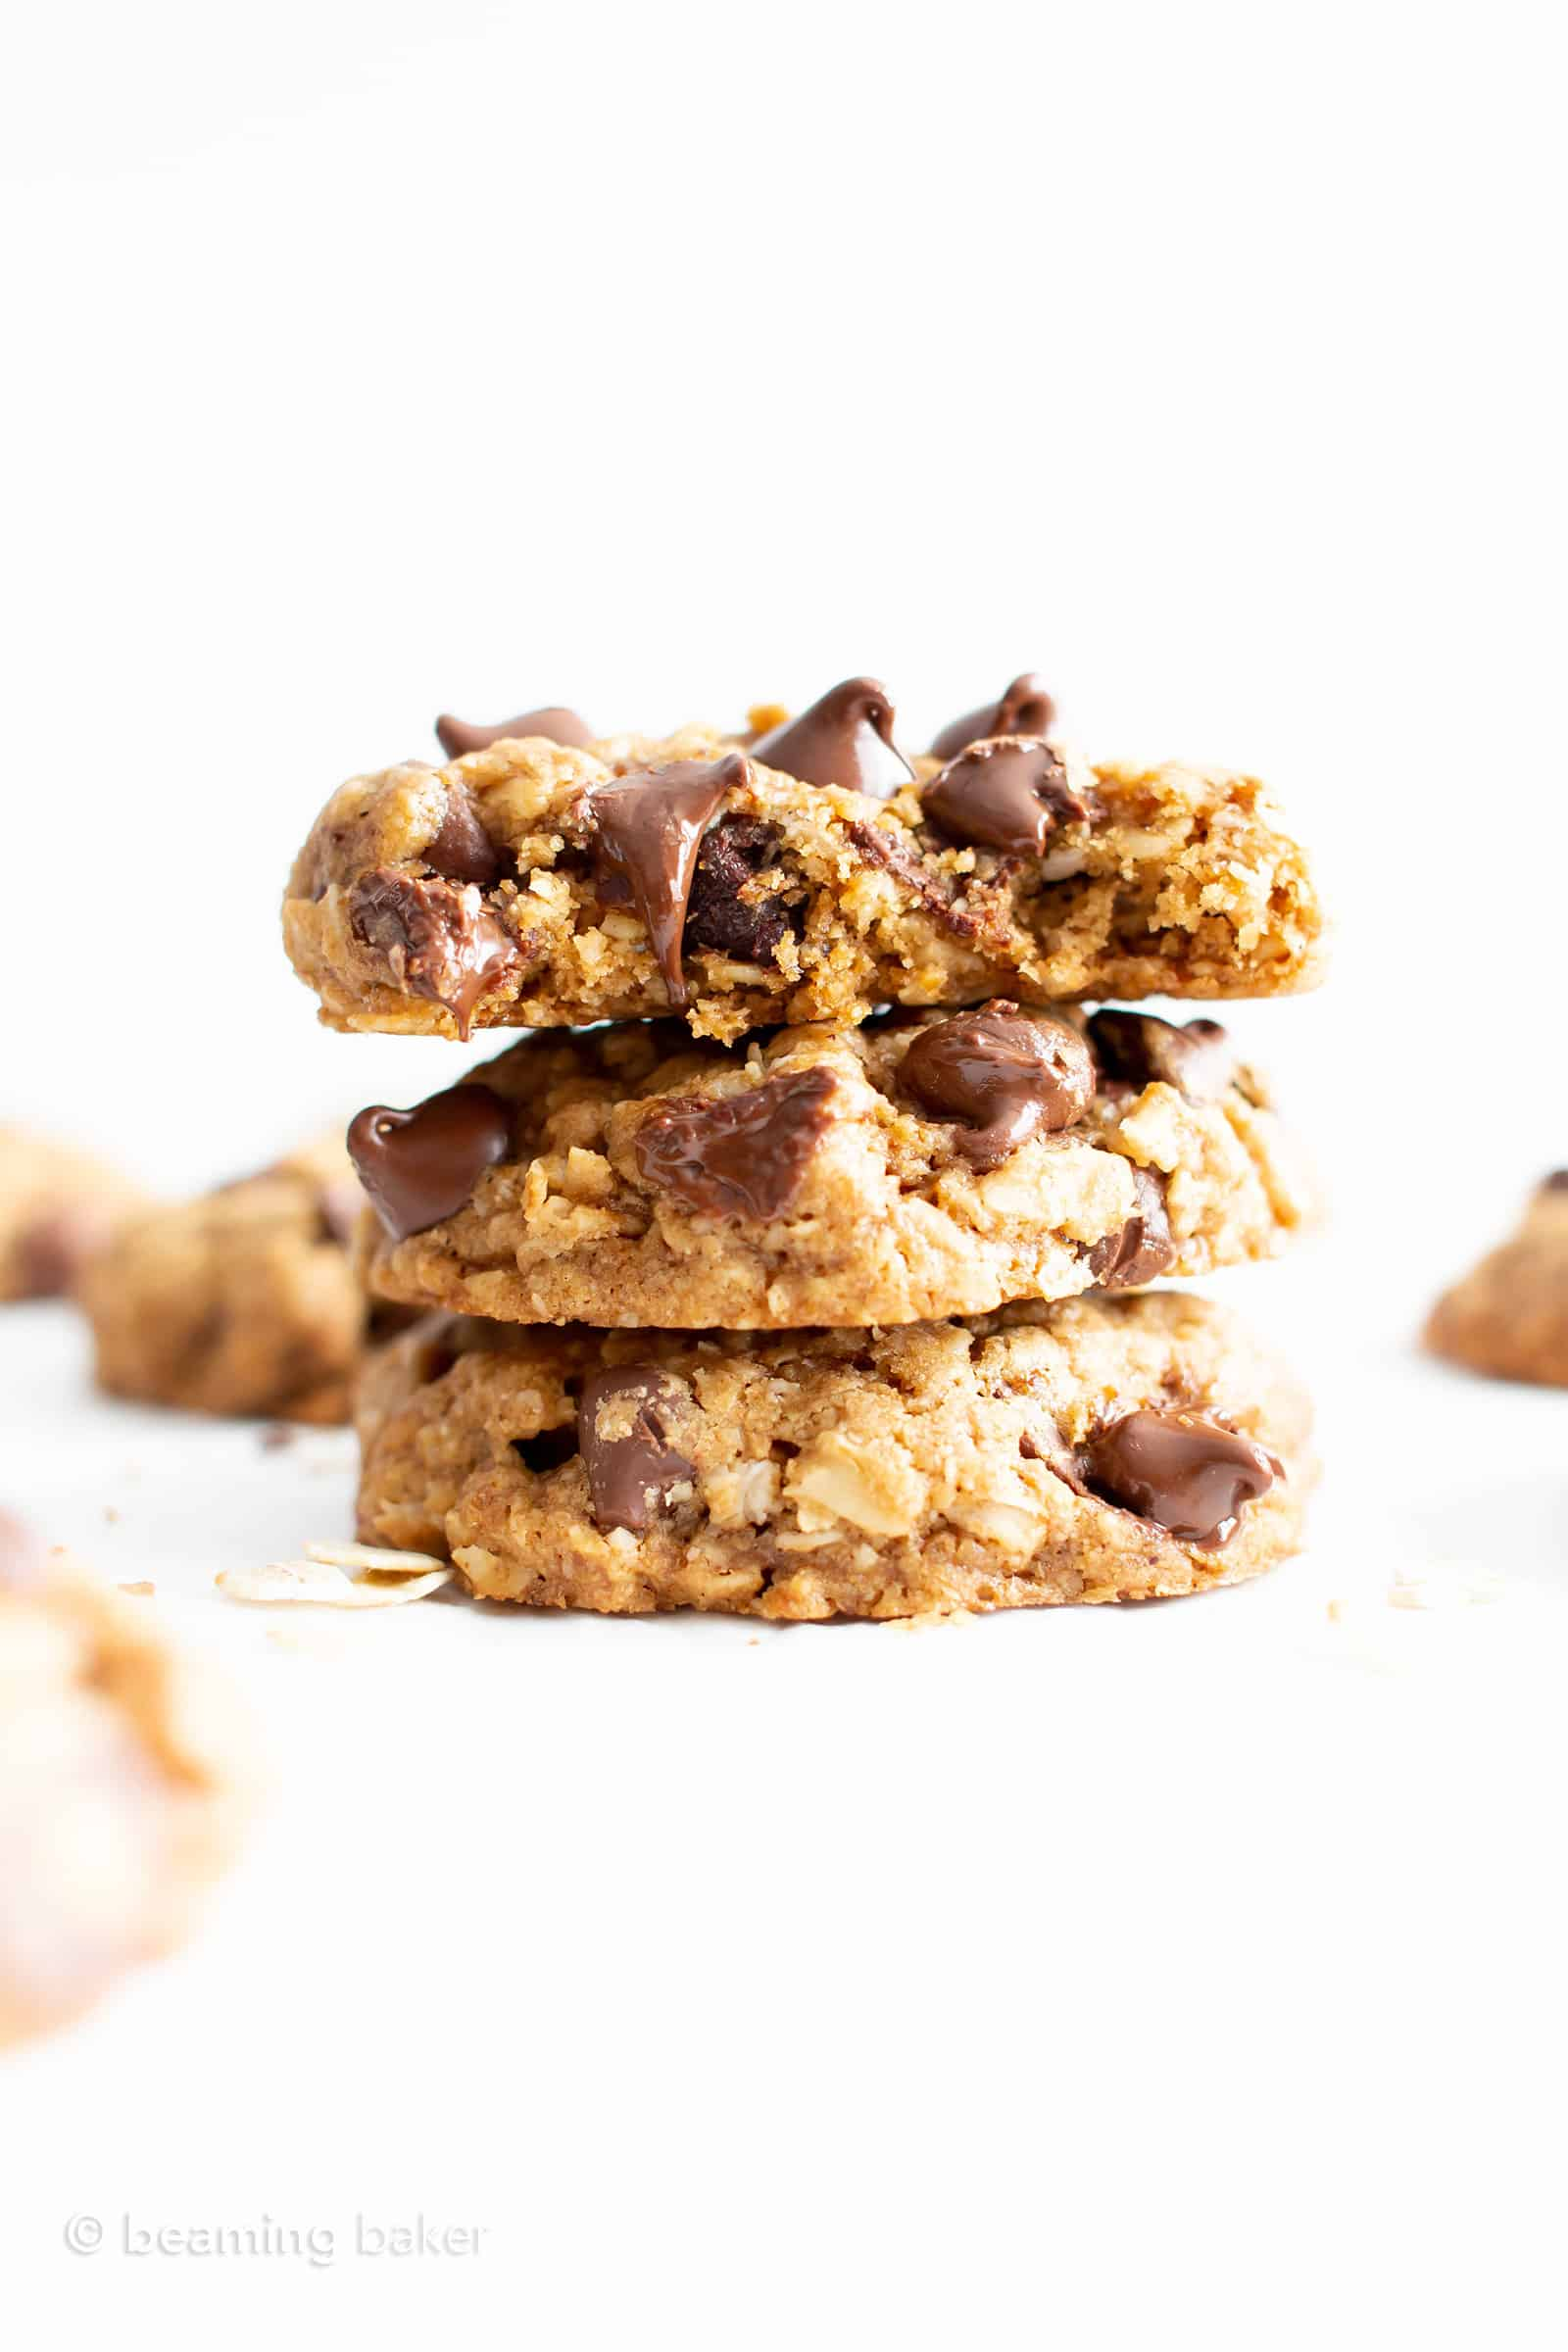 Best Gluten Free Oatmeal Chocolate Chip Cookies Recipe (GF, Vegan, Dairy-Free): this easy vegan oatmeal chocolate chip cookies recipe has a crispy exterior, soft & chewy interior, with cozy oatmeal flavor. It's the best GF oatmeal chocolate chip cookies – gluten free, dairy-free and made with healthy ingredients! #Vegan #GlutenFree #ChocolateChip #Cookies #DairyFree #Oatmeal | Recipe at BeamingBaker.com